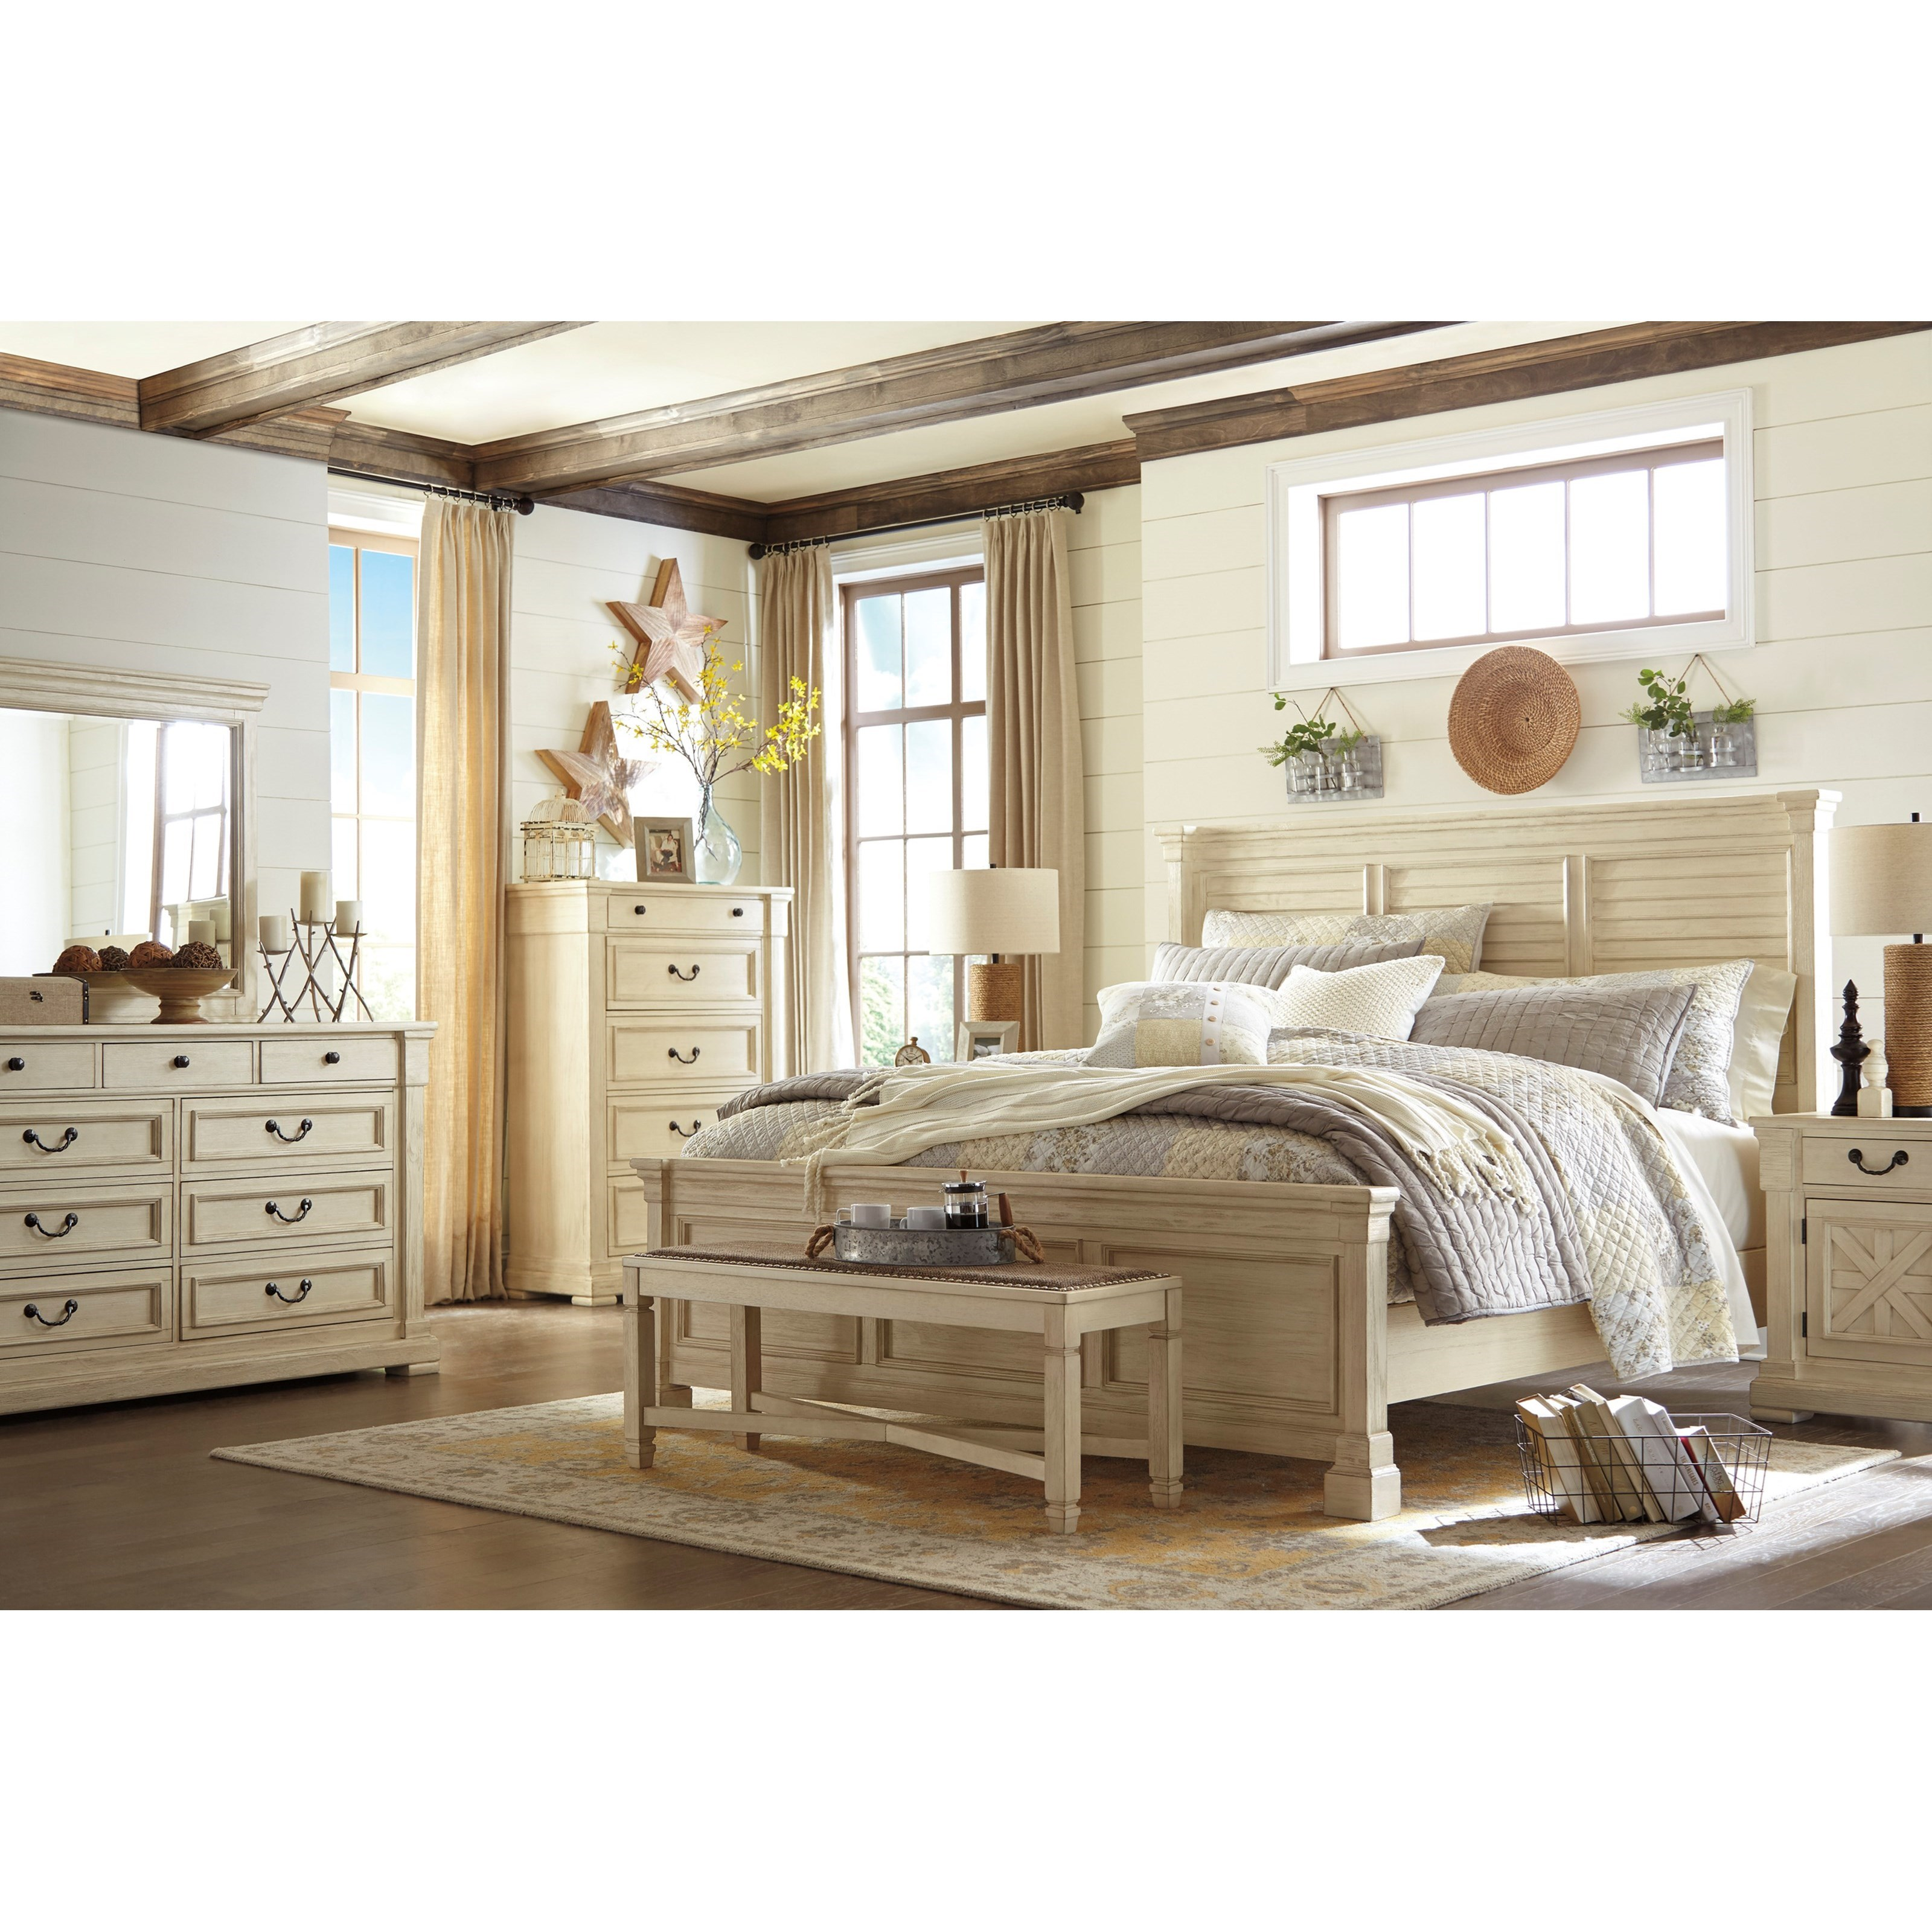 Signature Design by Ashley Bolanburg California King Bedroom Group - Item Number: B647 CK Bedroom Group 4